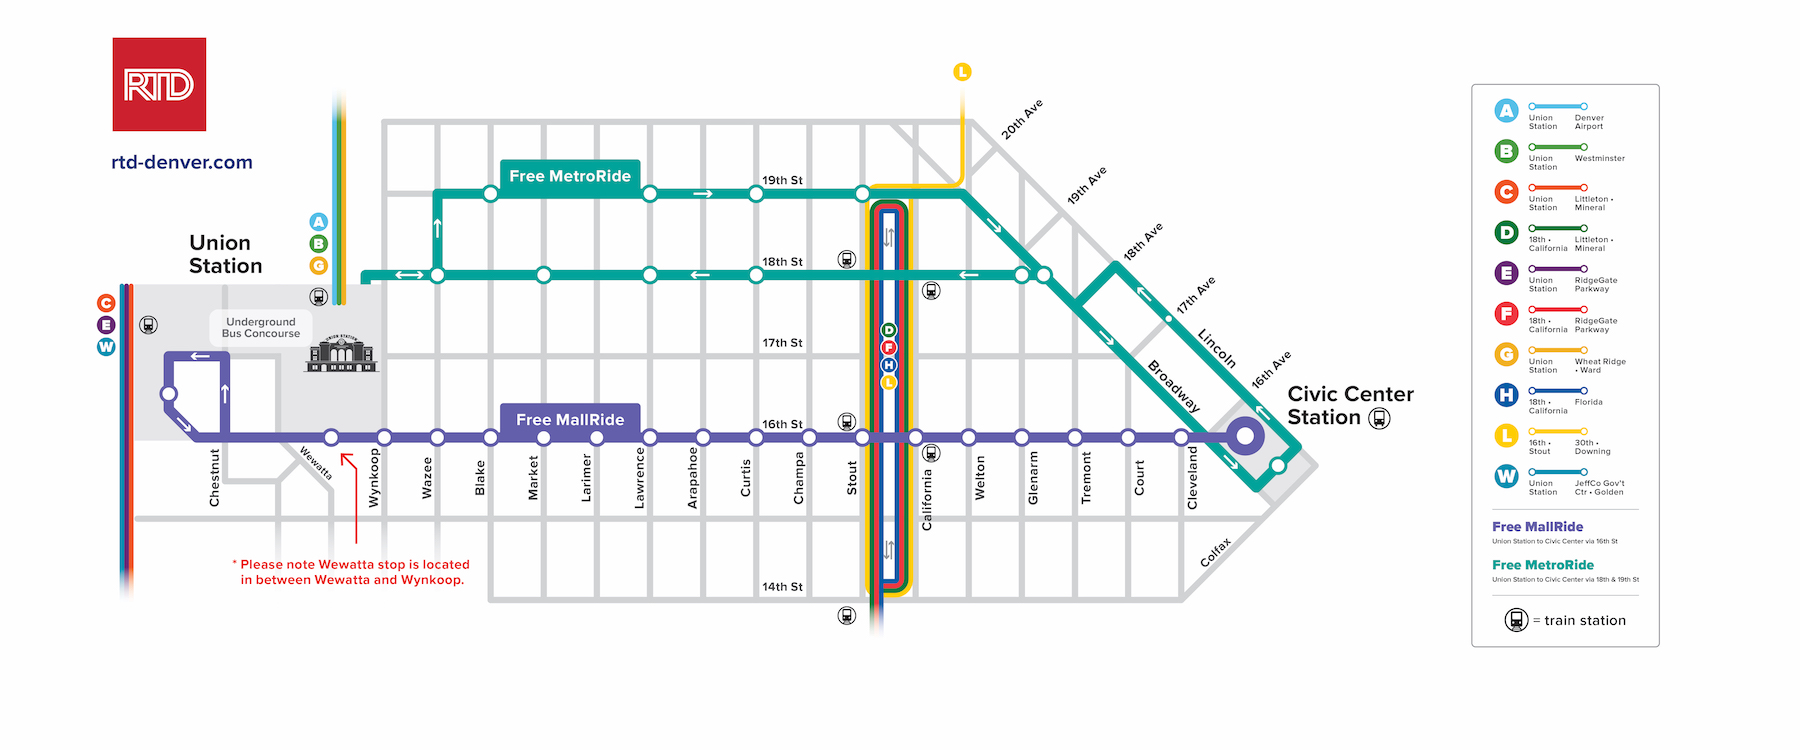 Free MallRide and MetroRide Map